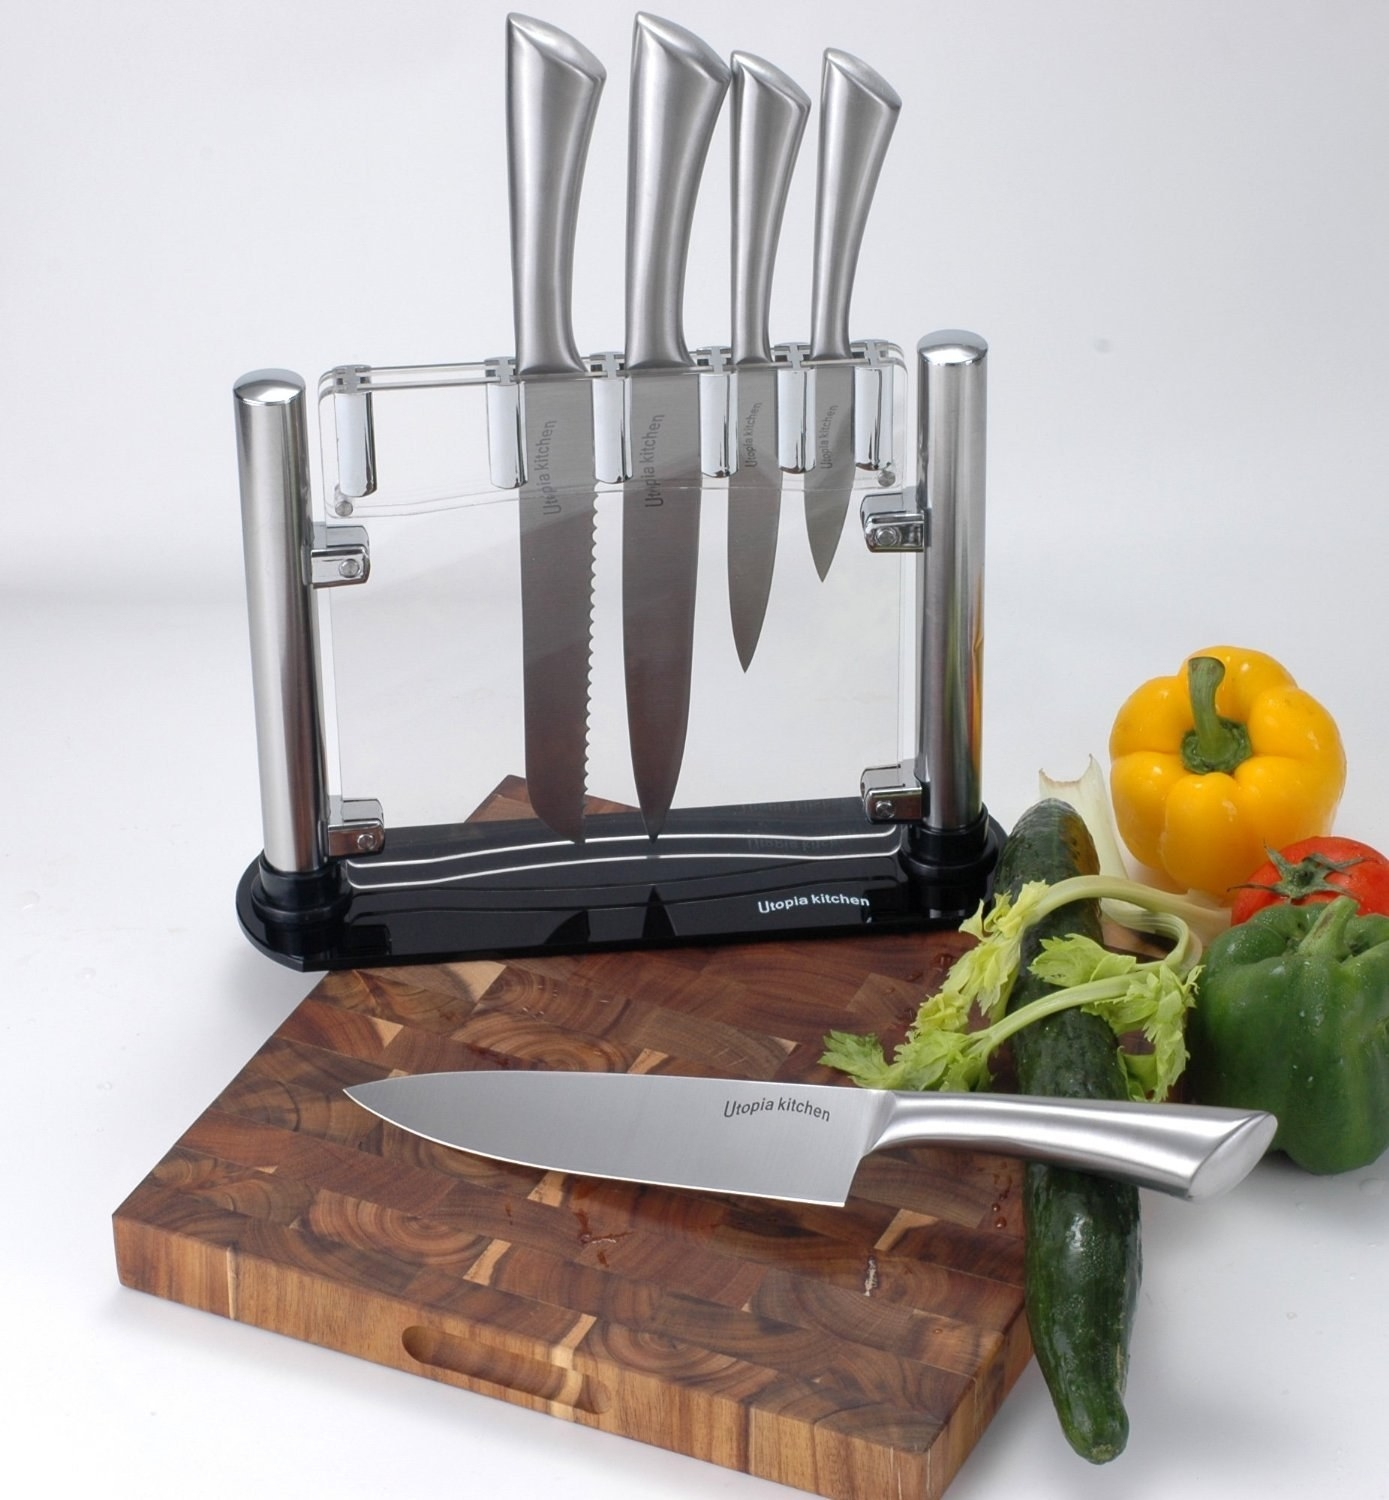 Clear knife block with five silver knives